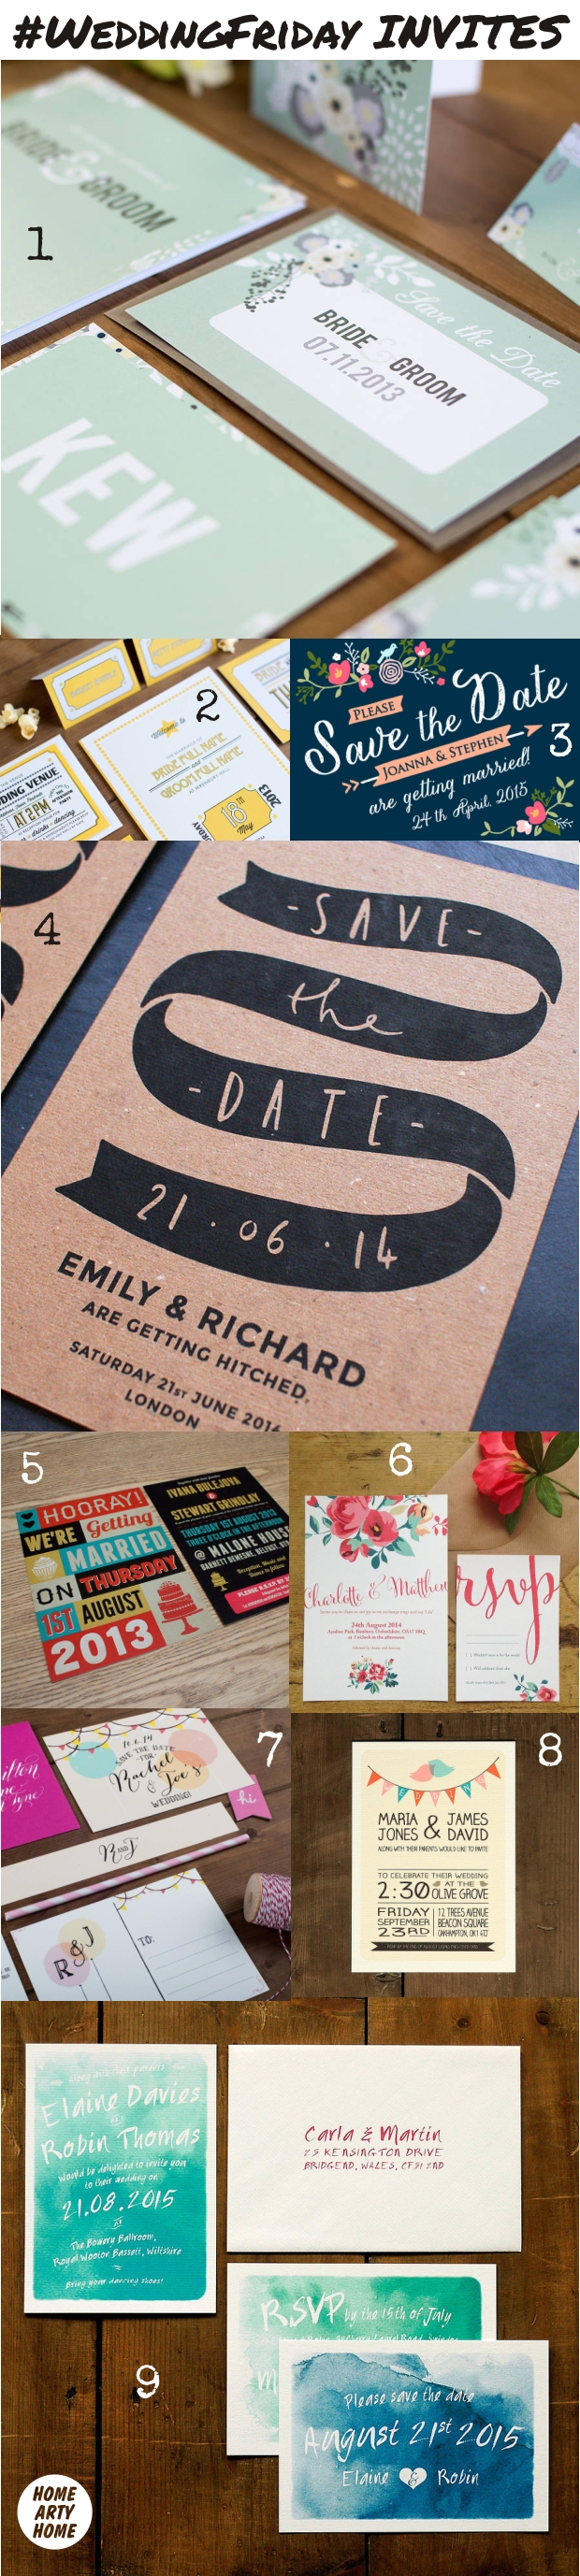 WeddingFriday Invites homeartyhome